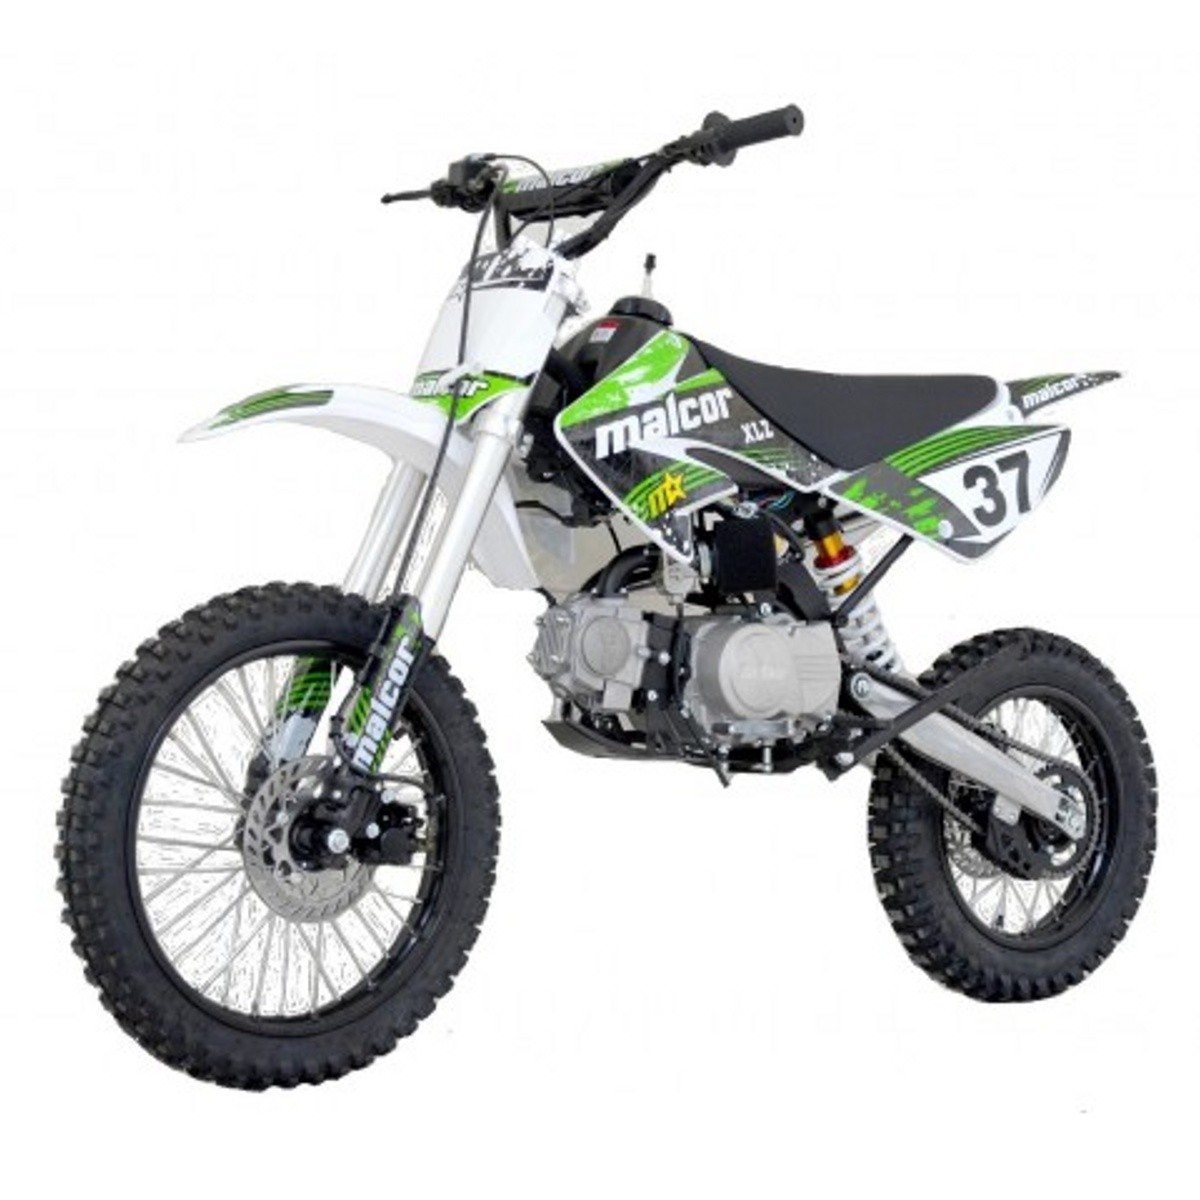 motocross 125cc xlz mid size pit bike baratas. Black Bedroom Furniture Sets. Home Design Ideas